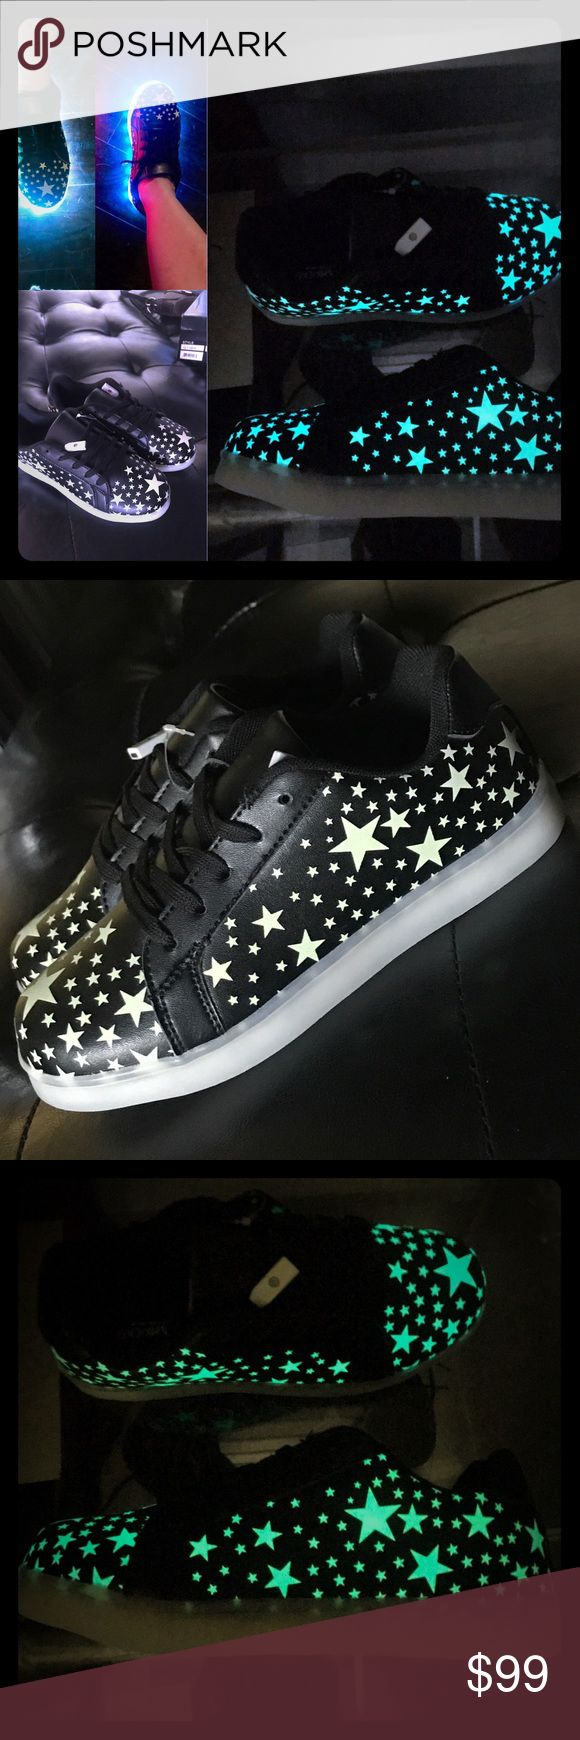 ✨👟Glow-in-the-dark✨Light-up✨Shoes✨👟 Super fun black sneakers with stars that glow in the dark and multicolor light-up soles.  Each shoe can be independently set to one of thirteen different light-up settings including solid, pulse, strobe, blink, random, fast or slow in whichever color choice you prefer. Shoes Sneakers